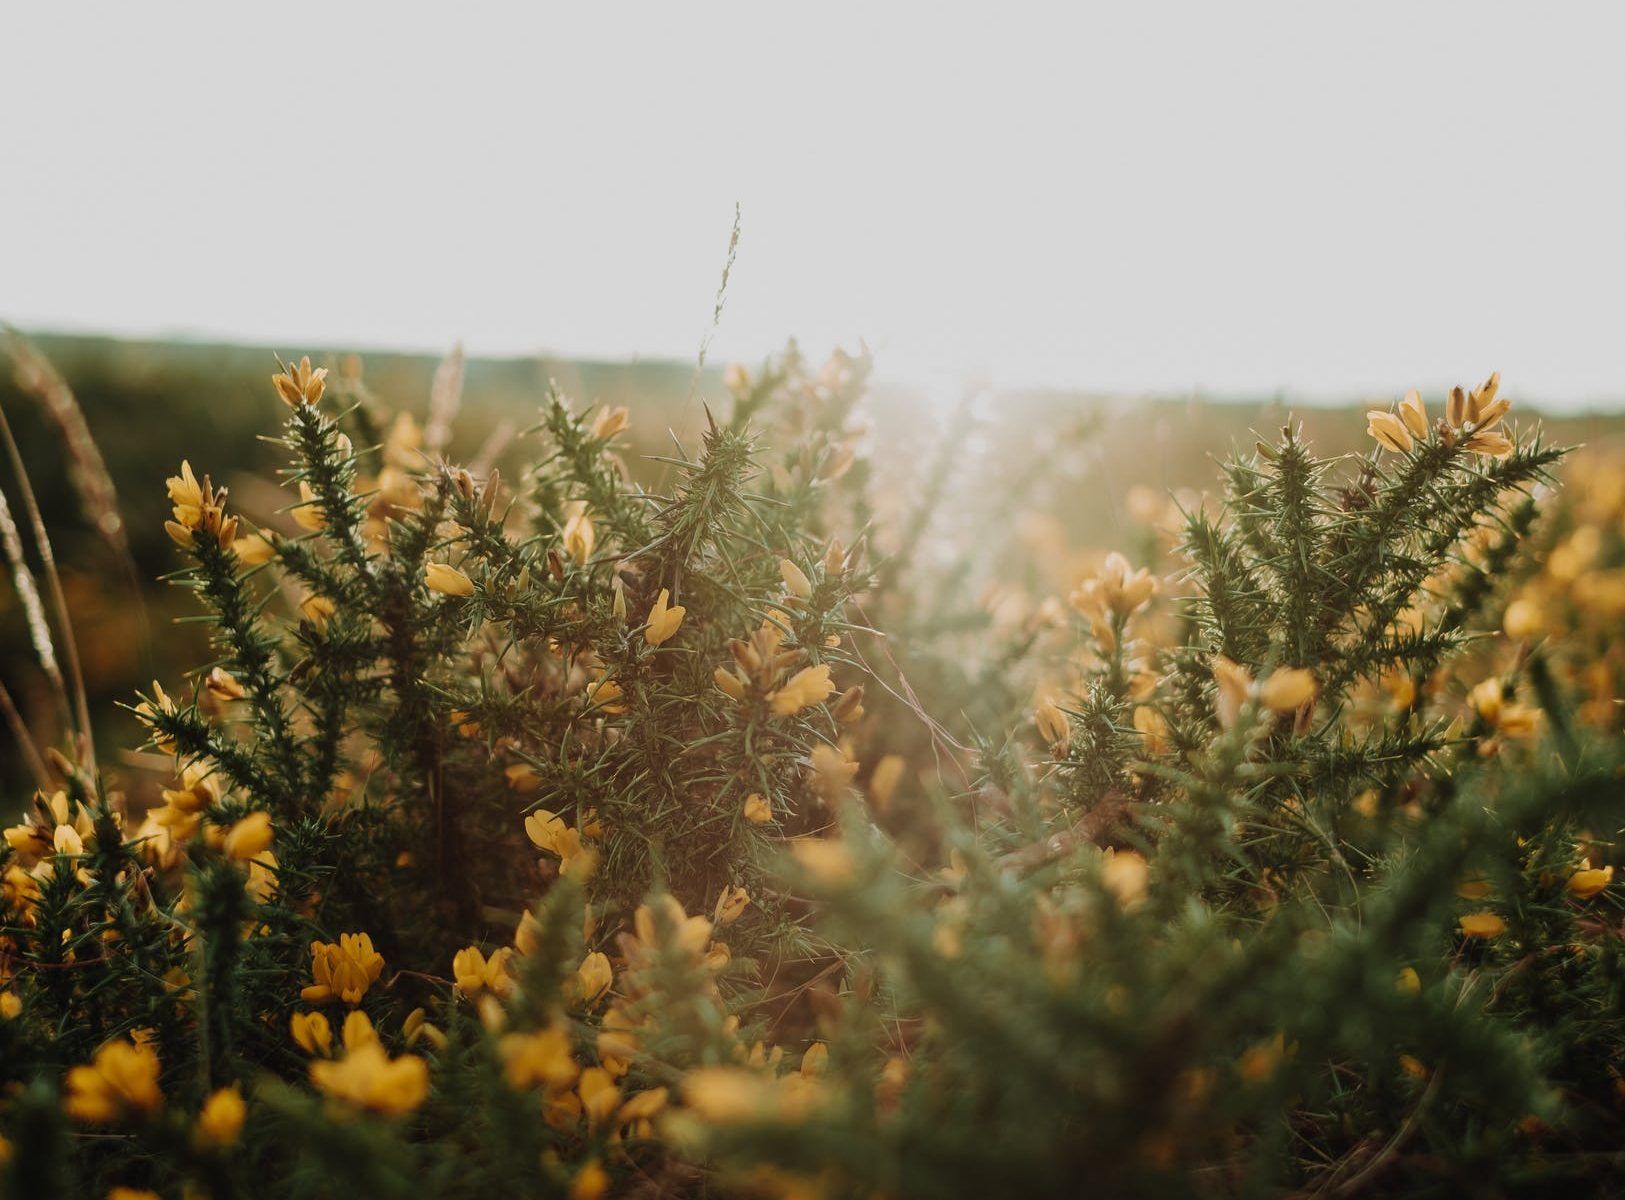 spiny shrub with yellow flowers of gorse plant growing in field